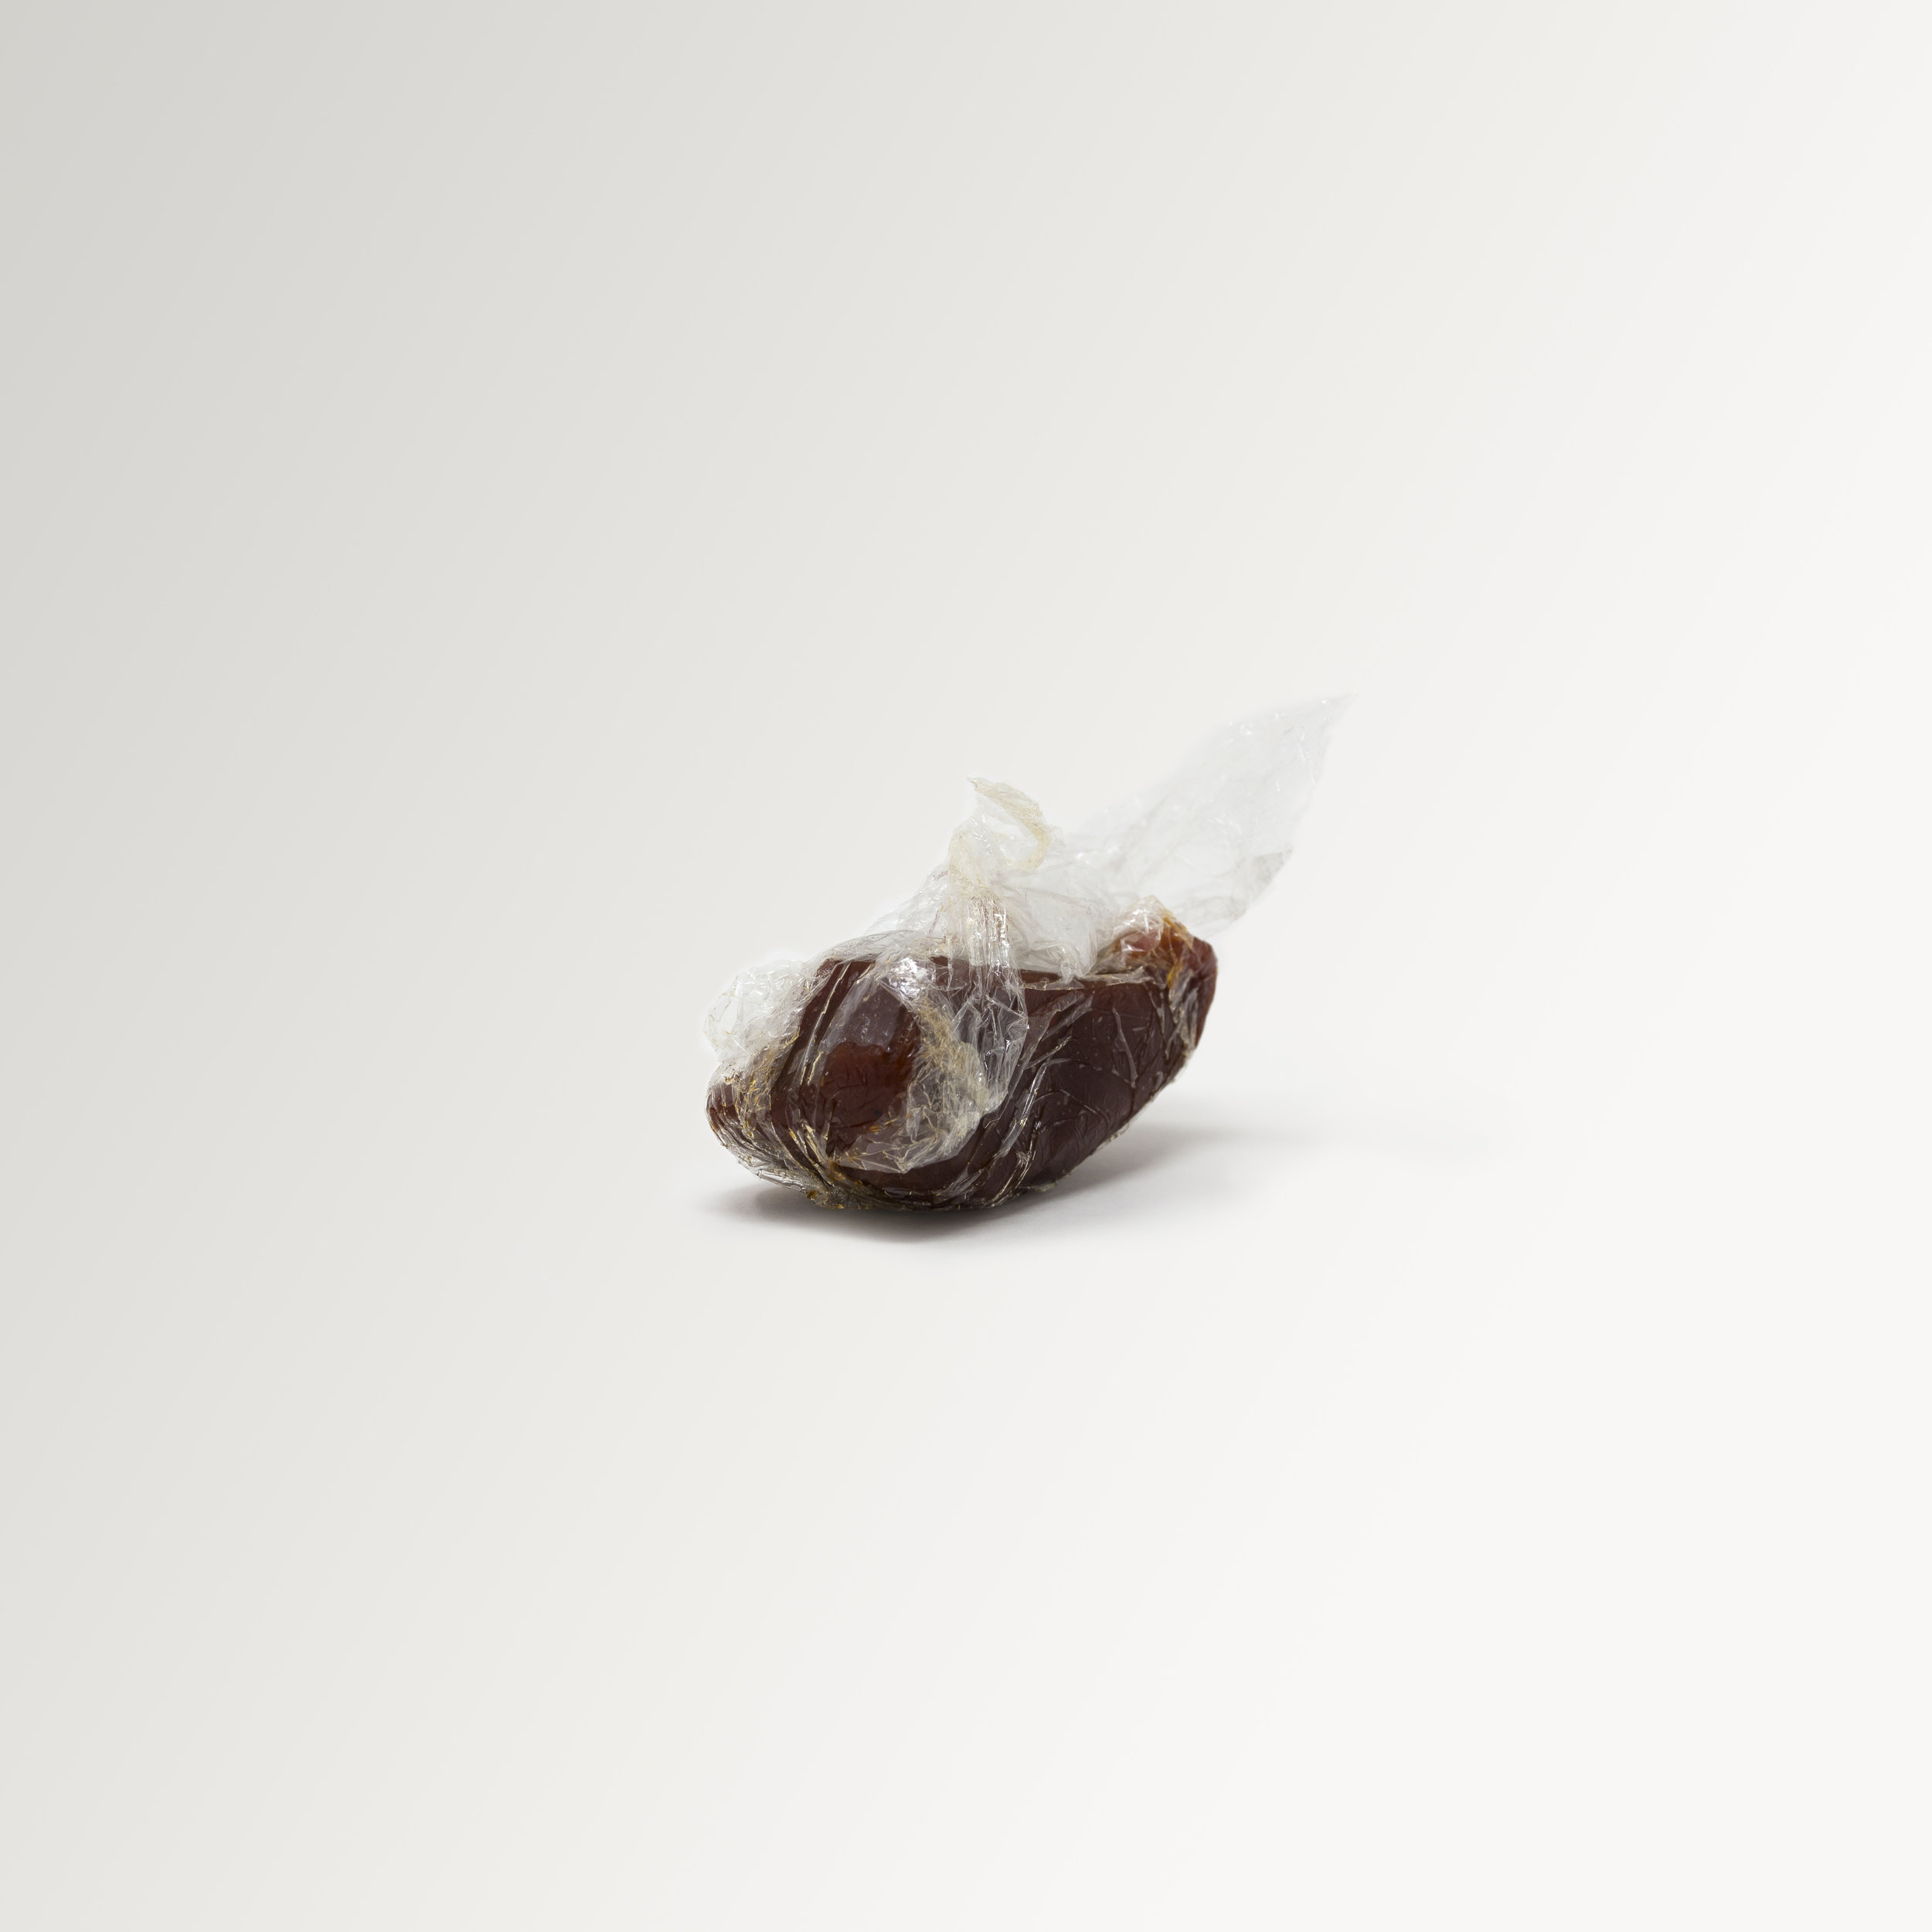 A simple, minimalist, contemporary, fine art photograph of a slice of quince